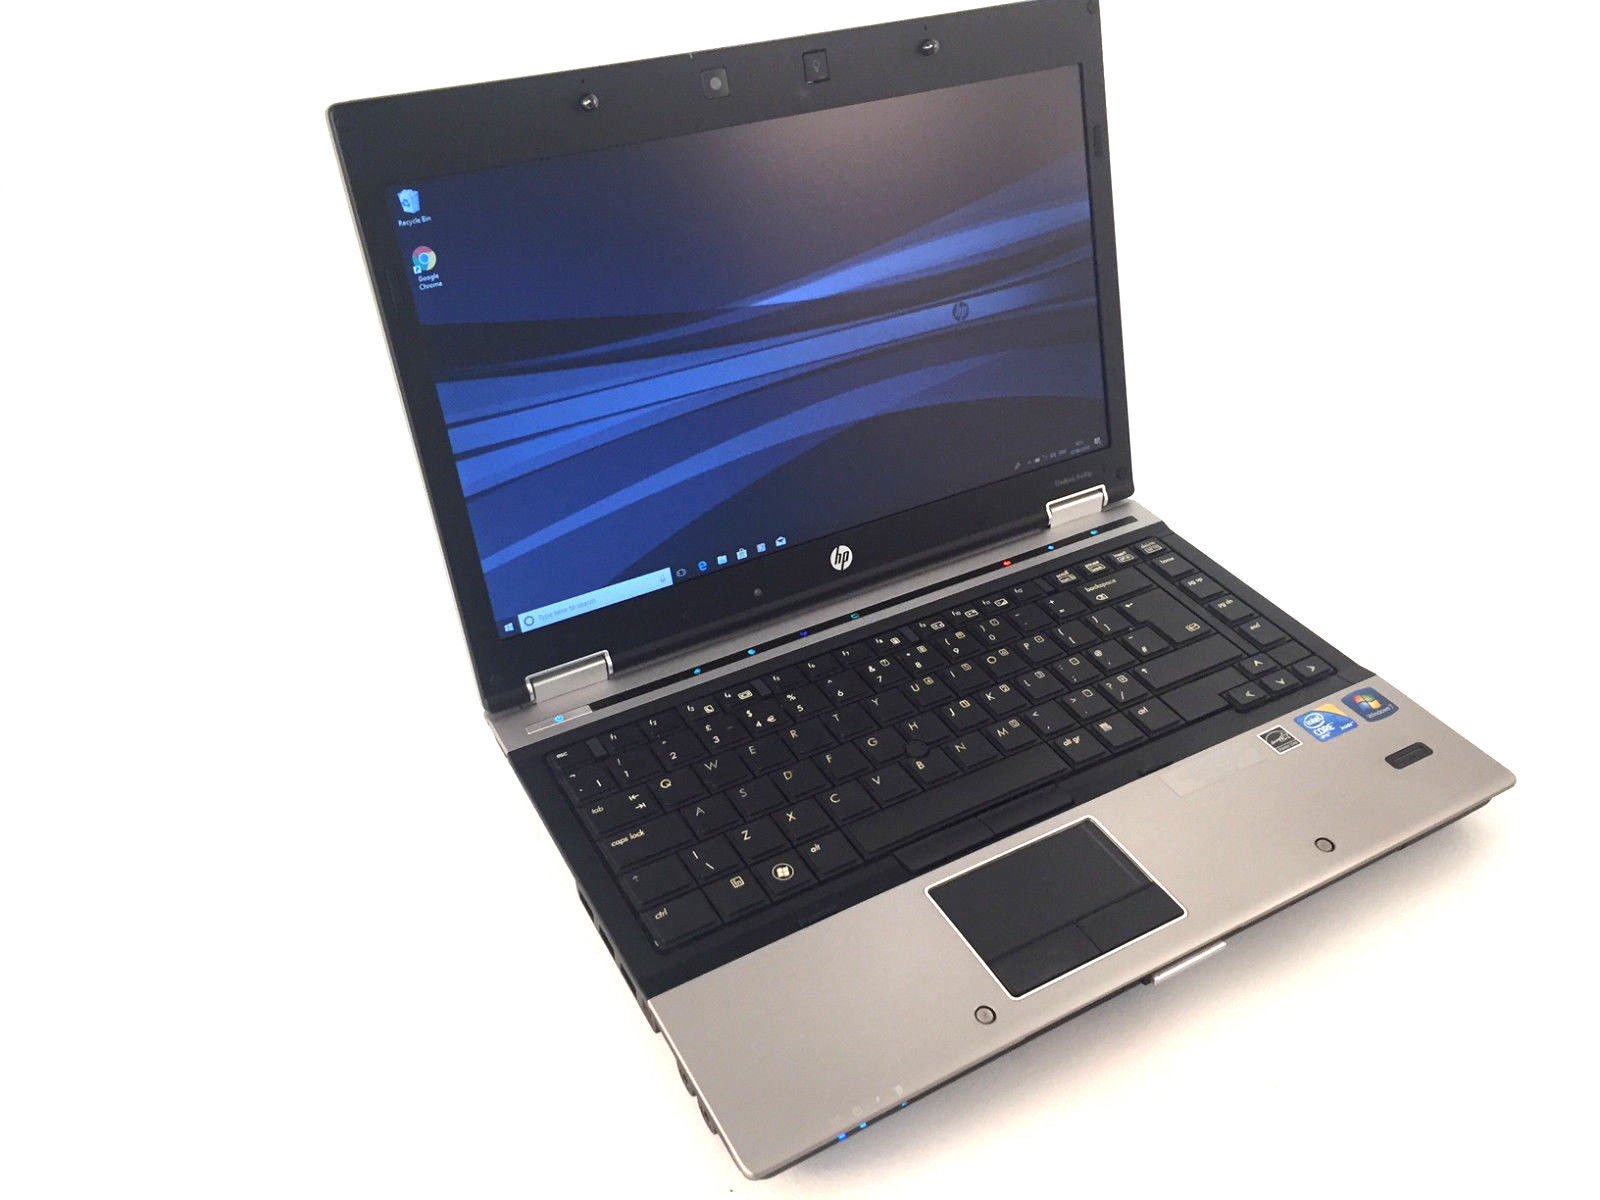 HP-Elitebook-8440p - 134356